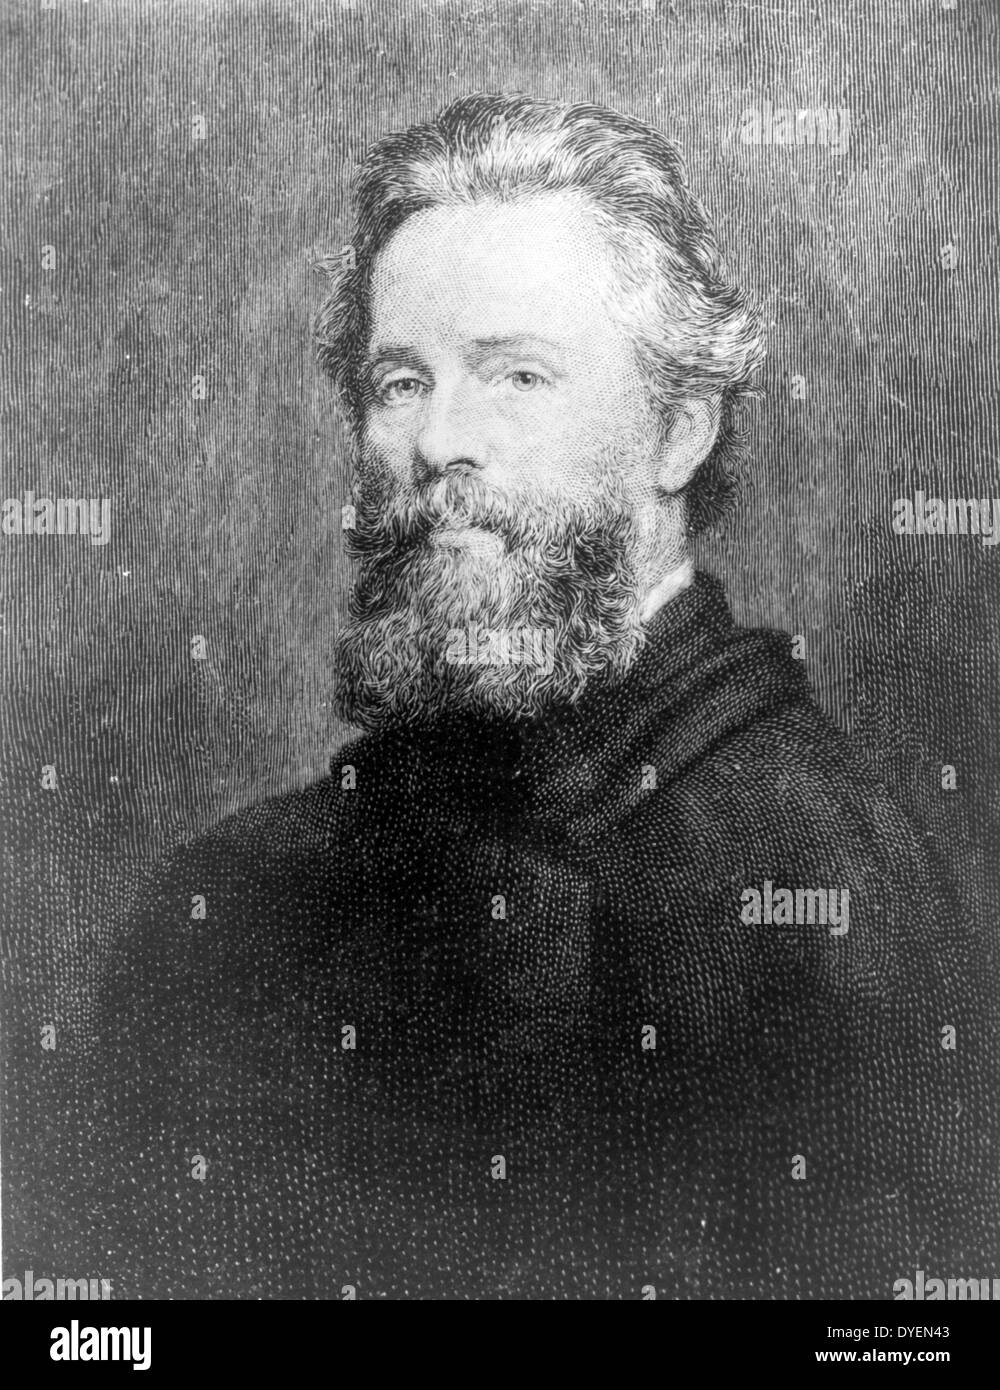 Herman Melville, American author. - Stock Image